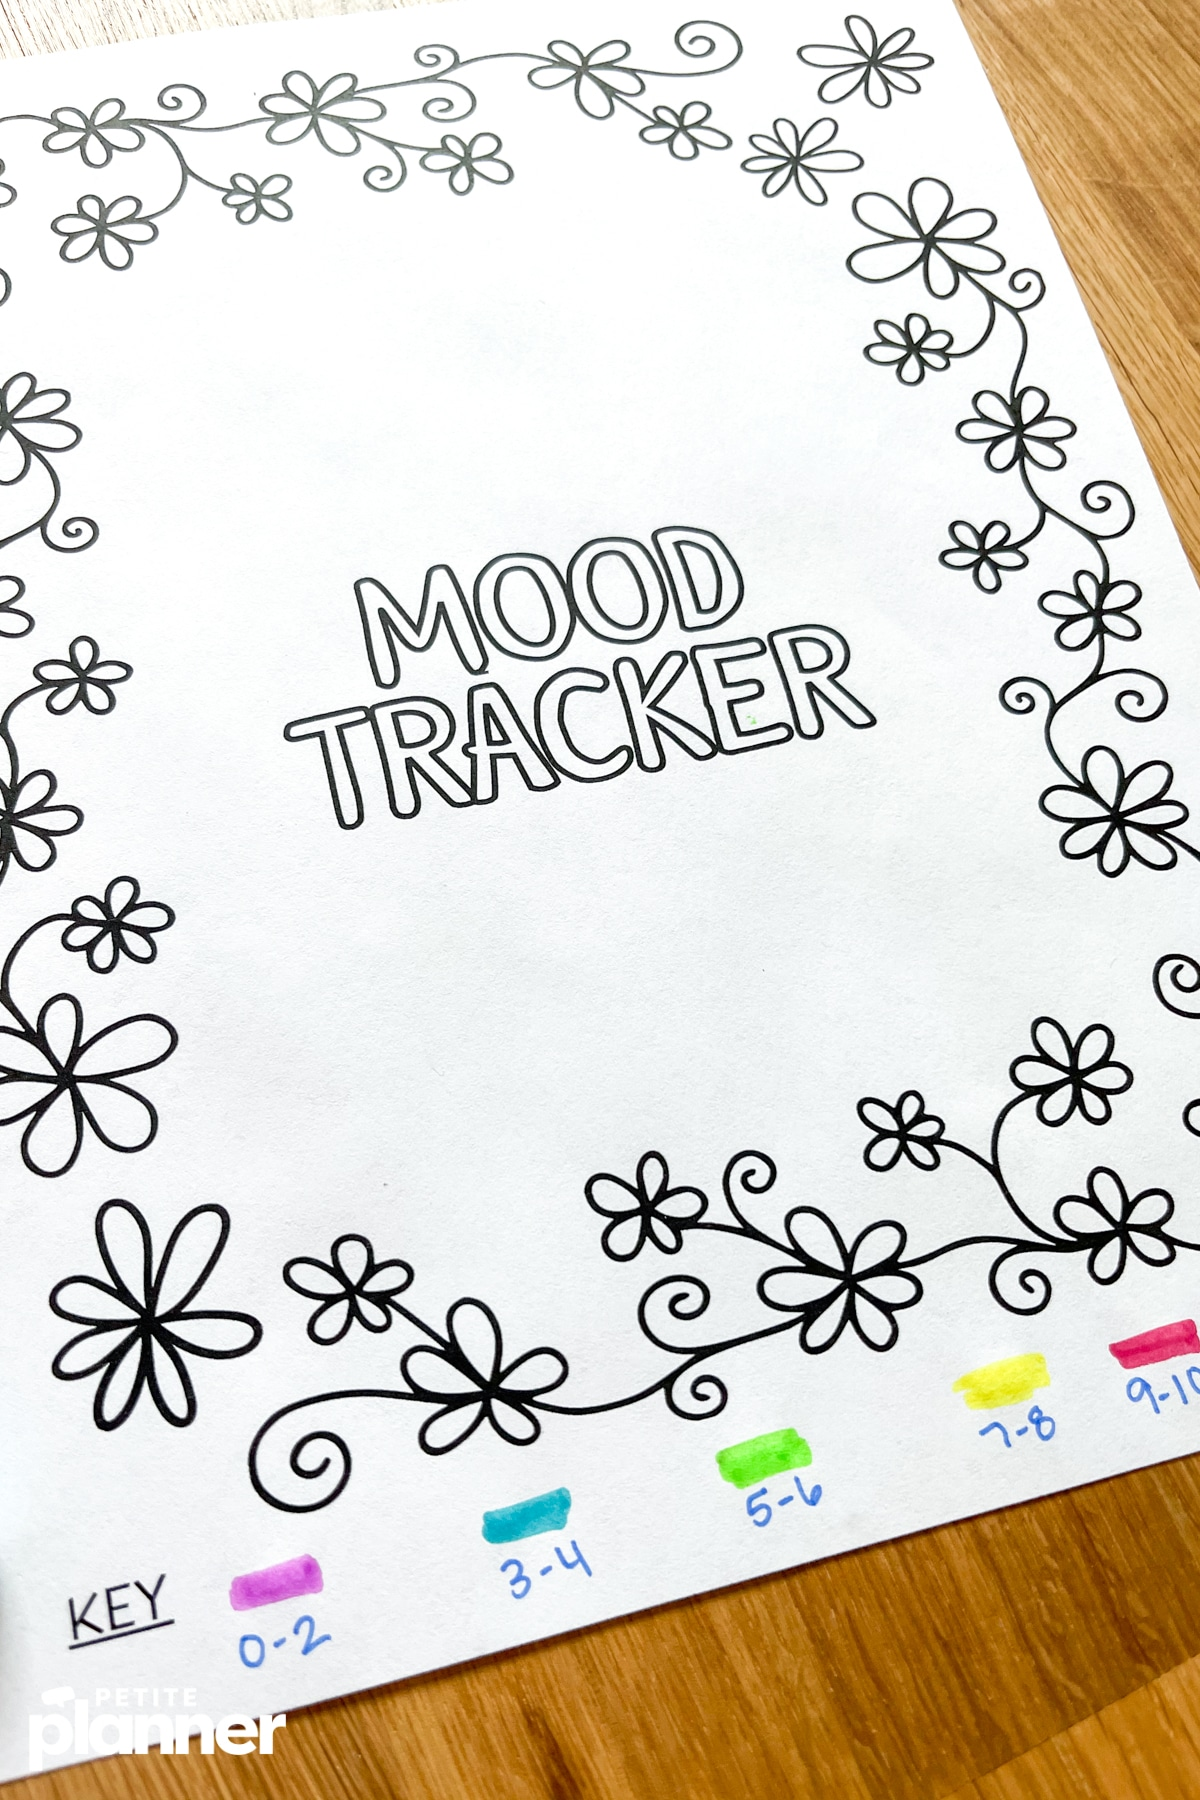 Floral themed mood tracker printable page